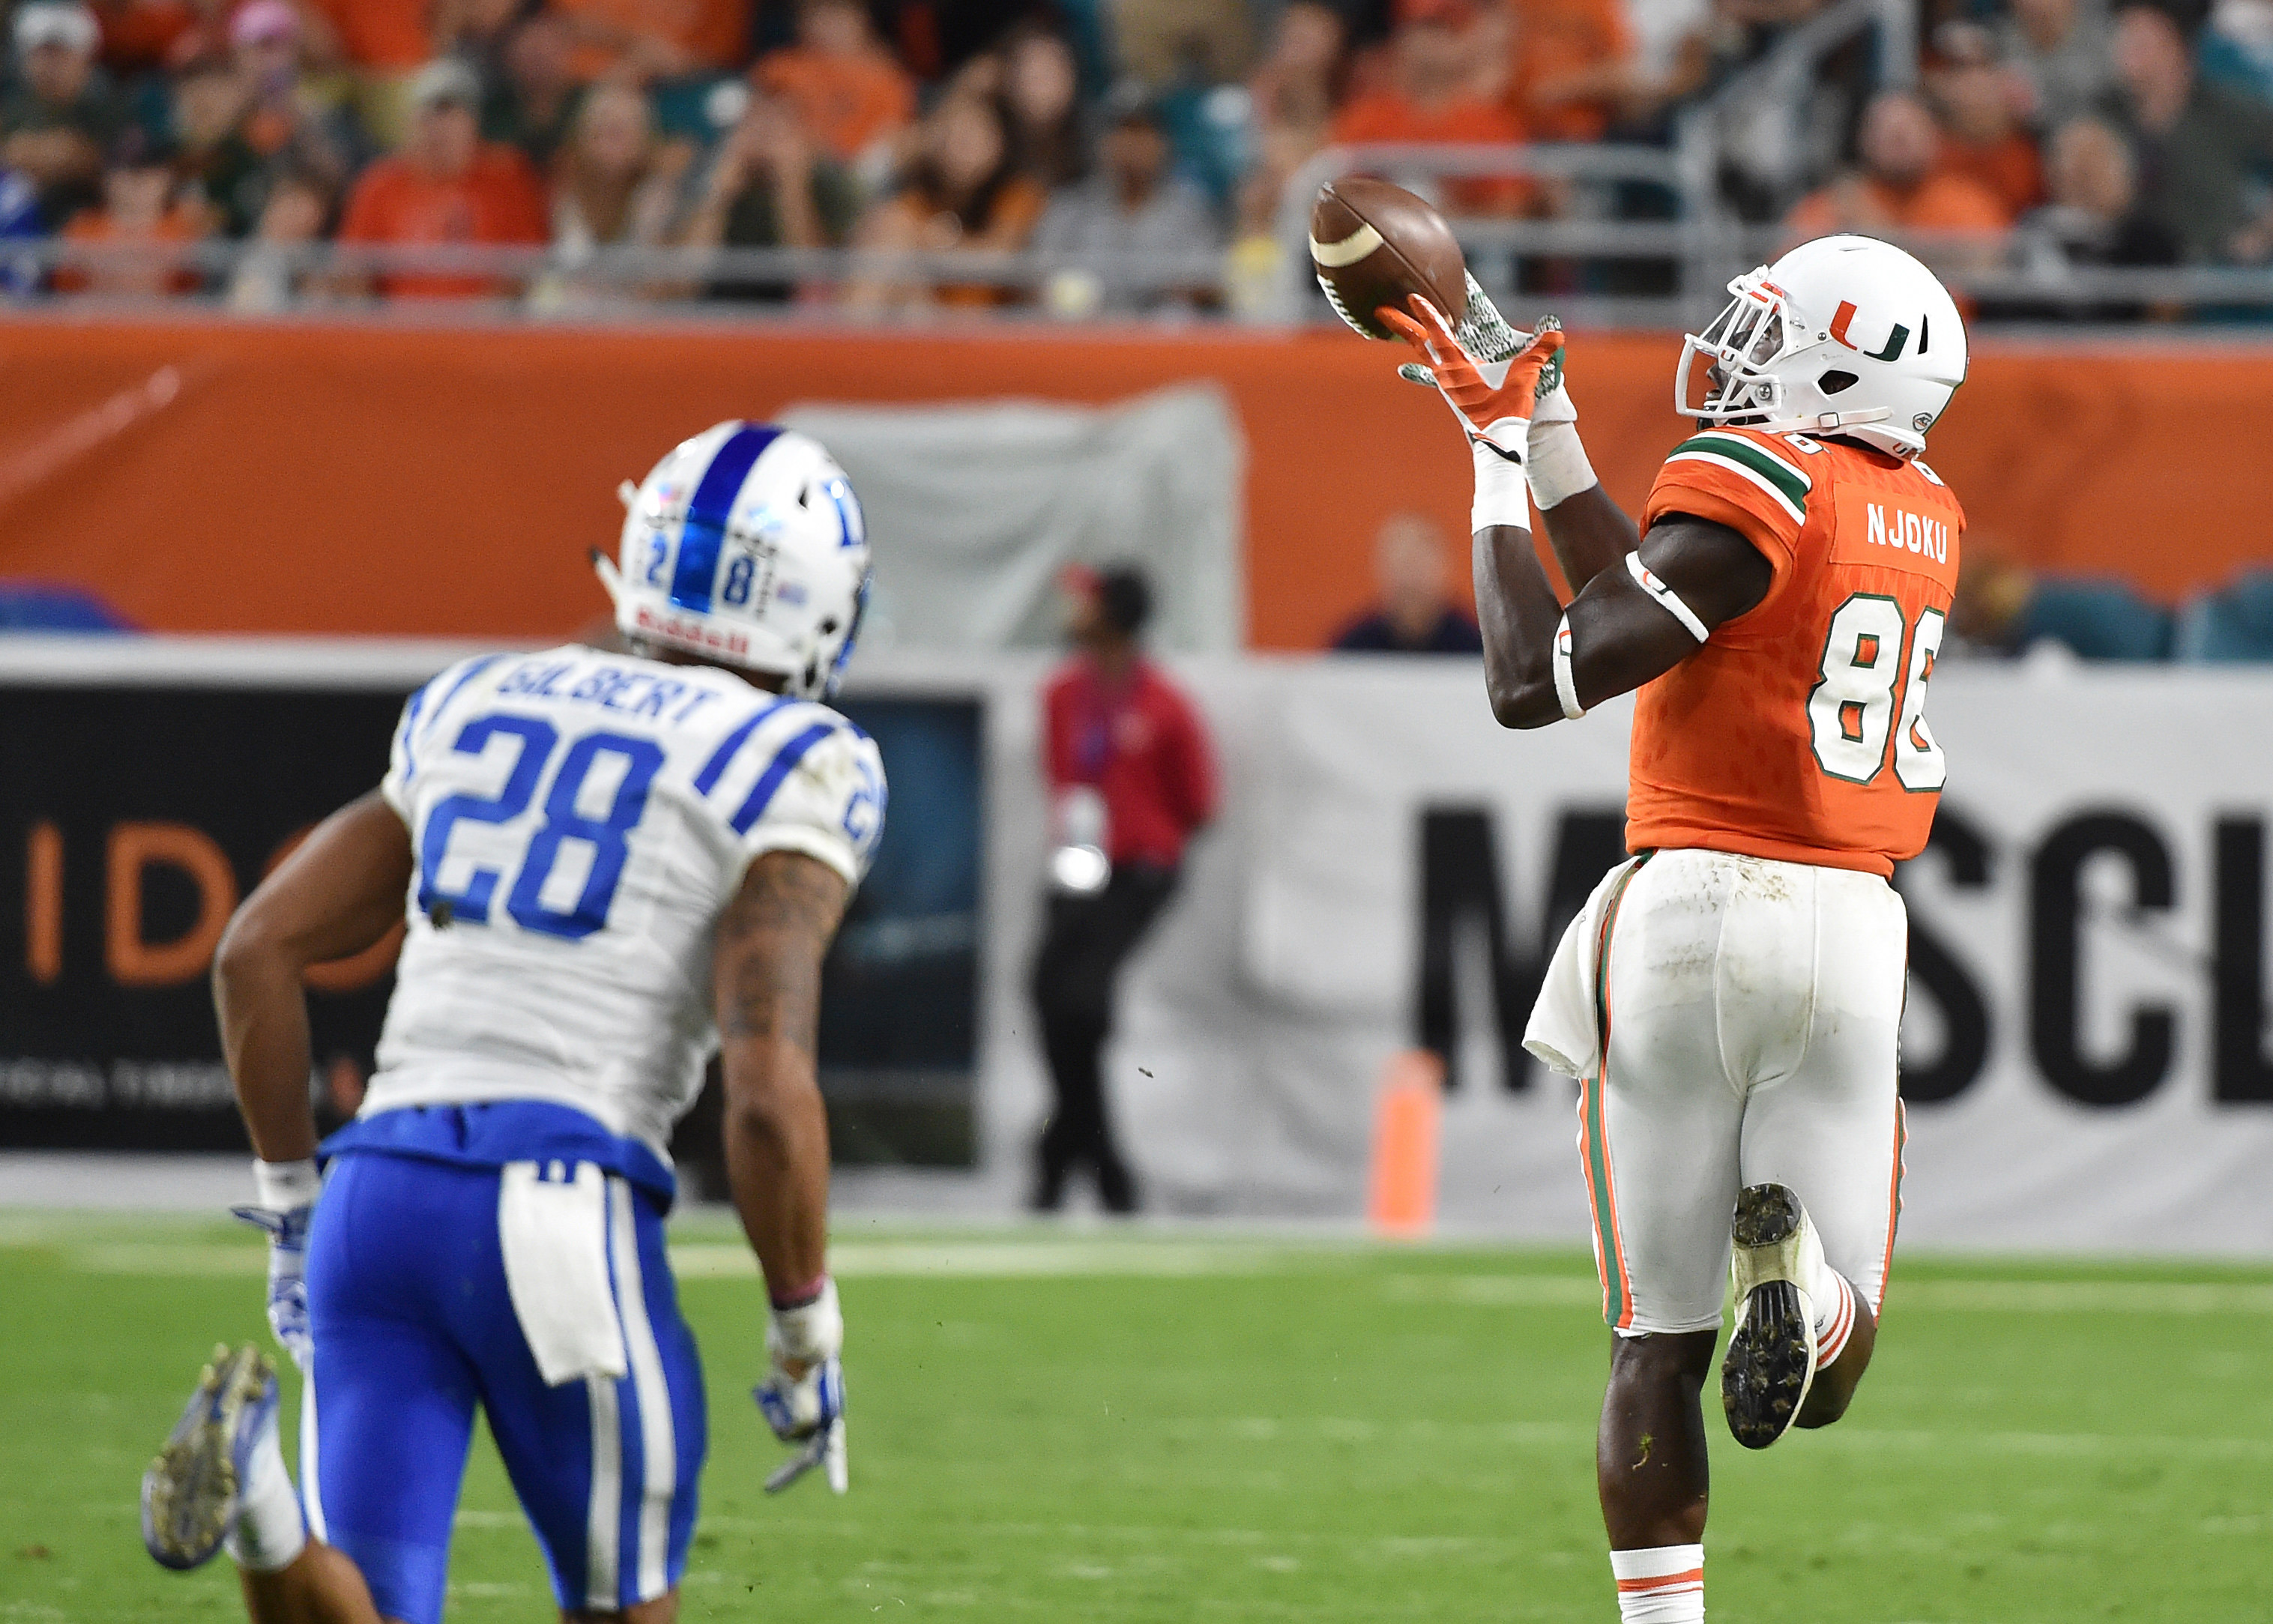 9707008-ncaa-football-duke-at-miami